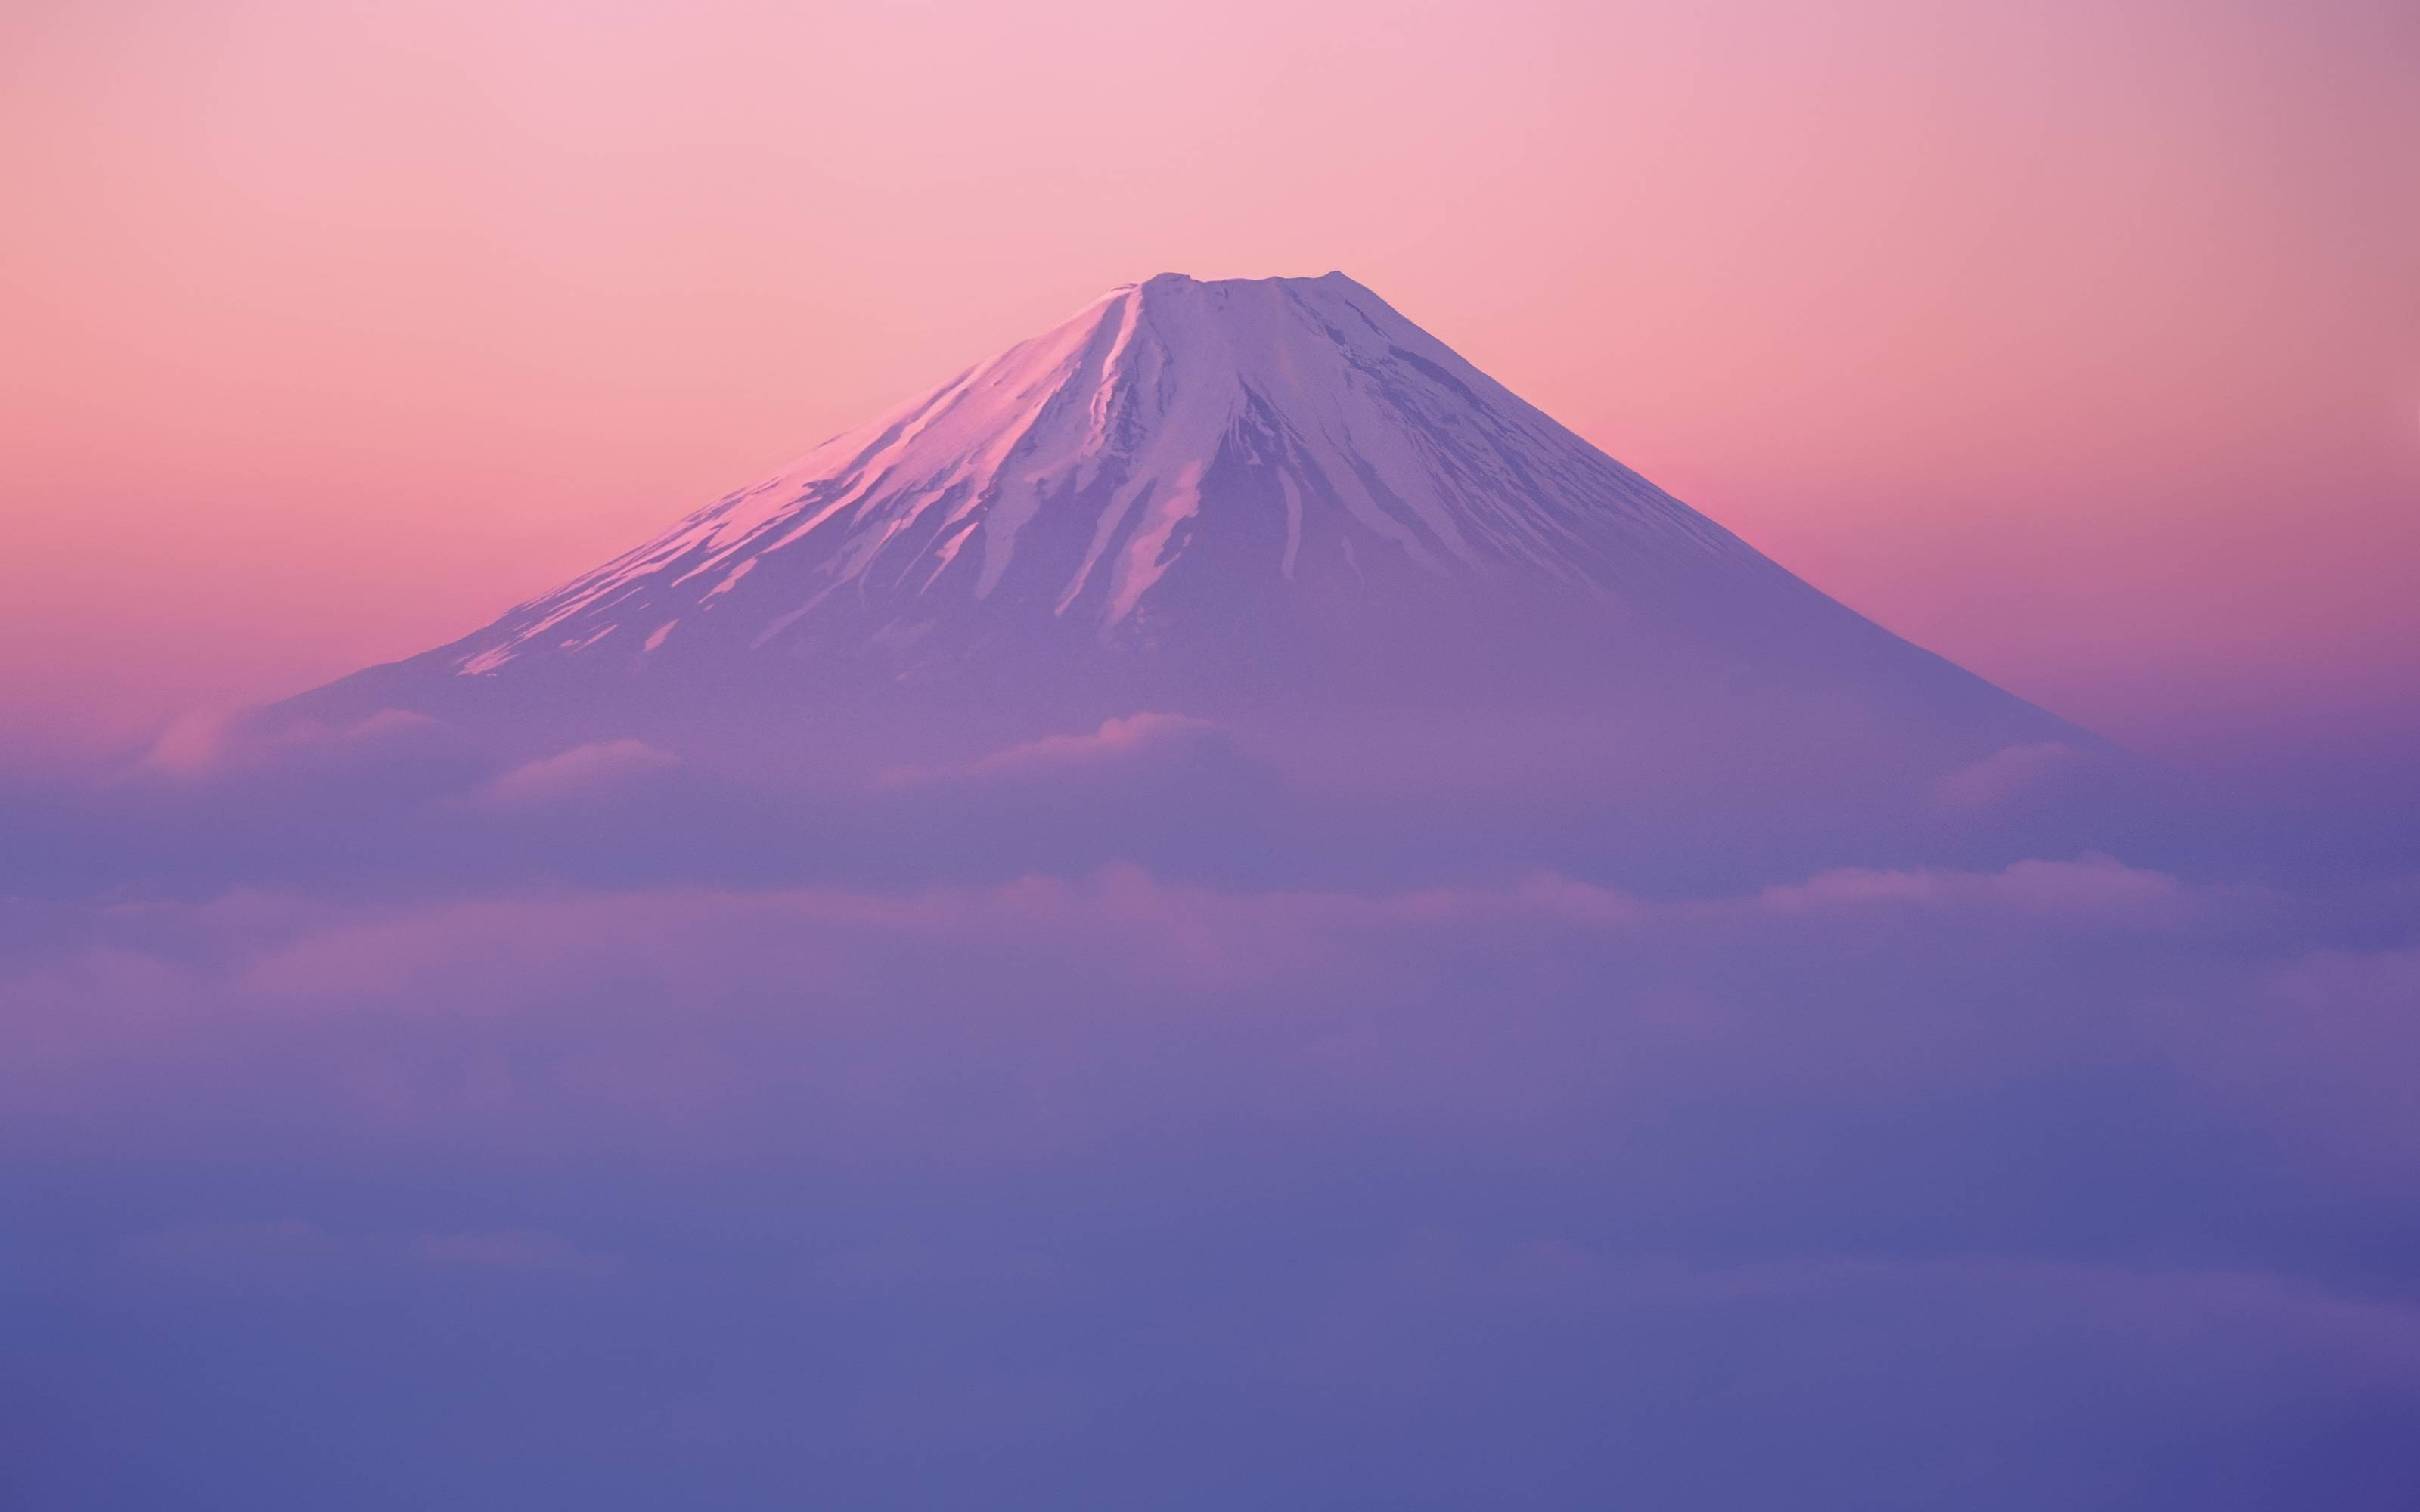 New Mt Fuji Wallpaper in Mac OS X Lion Developer Preview 2 3200x2000